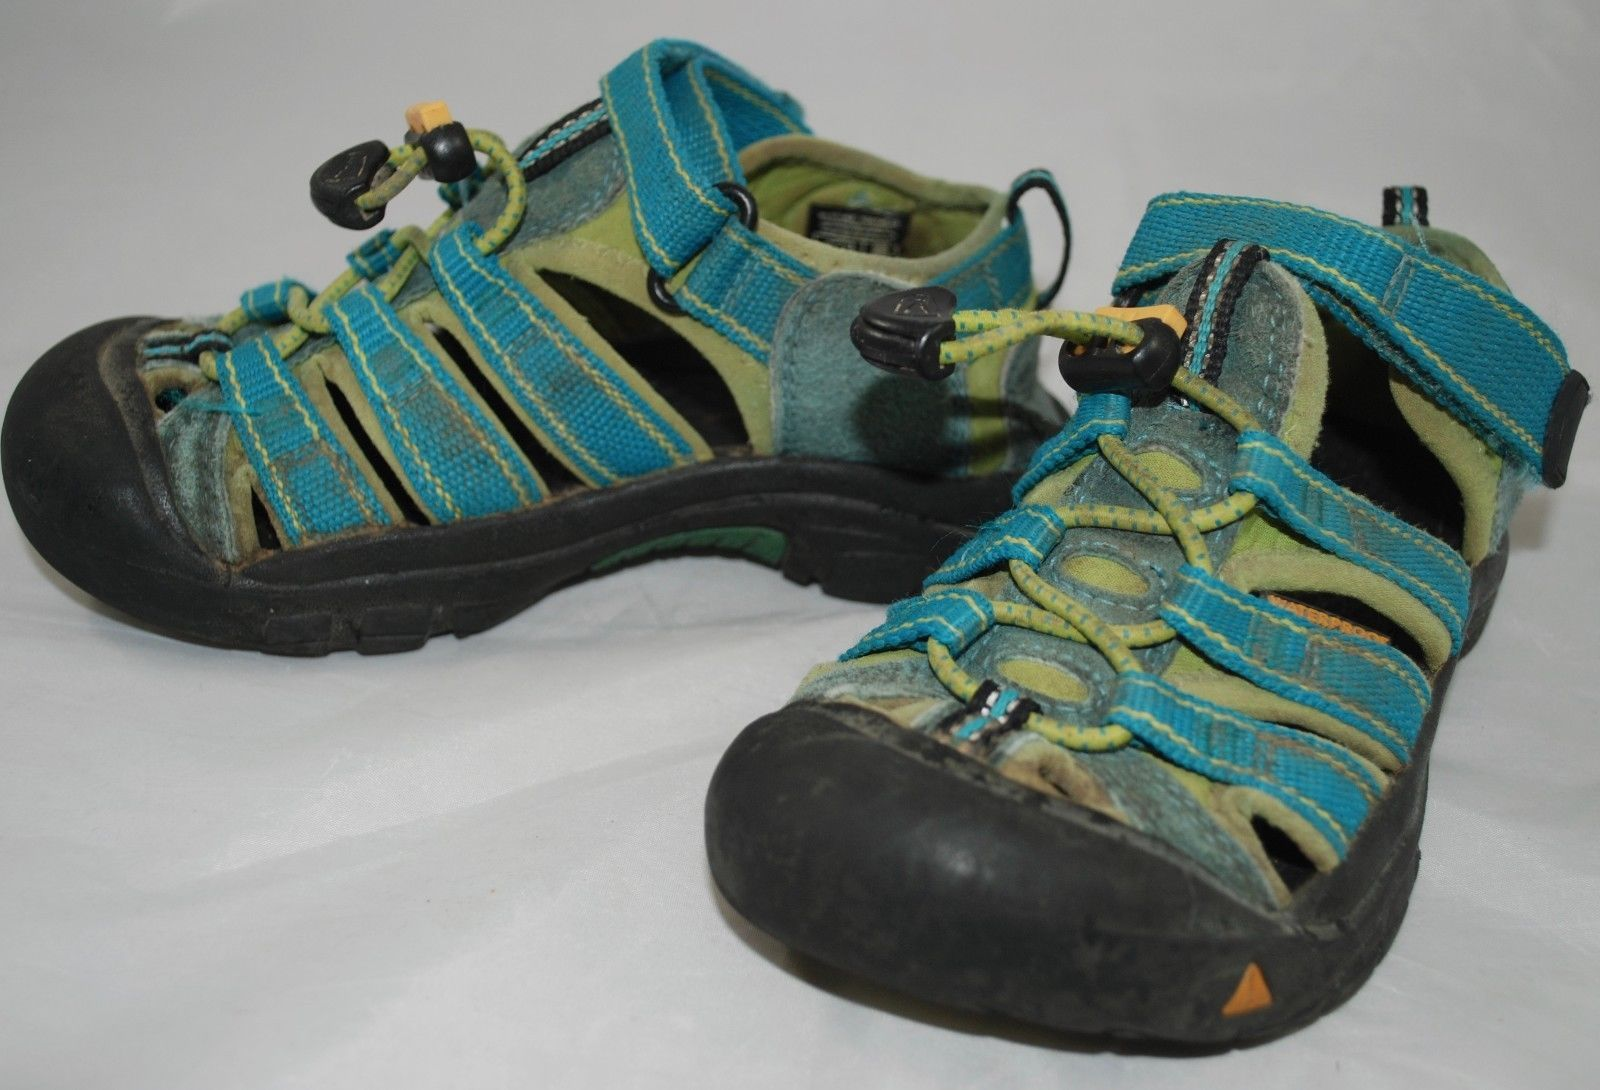 b911b8c58c75 KEEN Kids Newport H2 Sandals Caribbean Sea and 32 similar items. 57